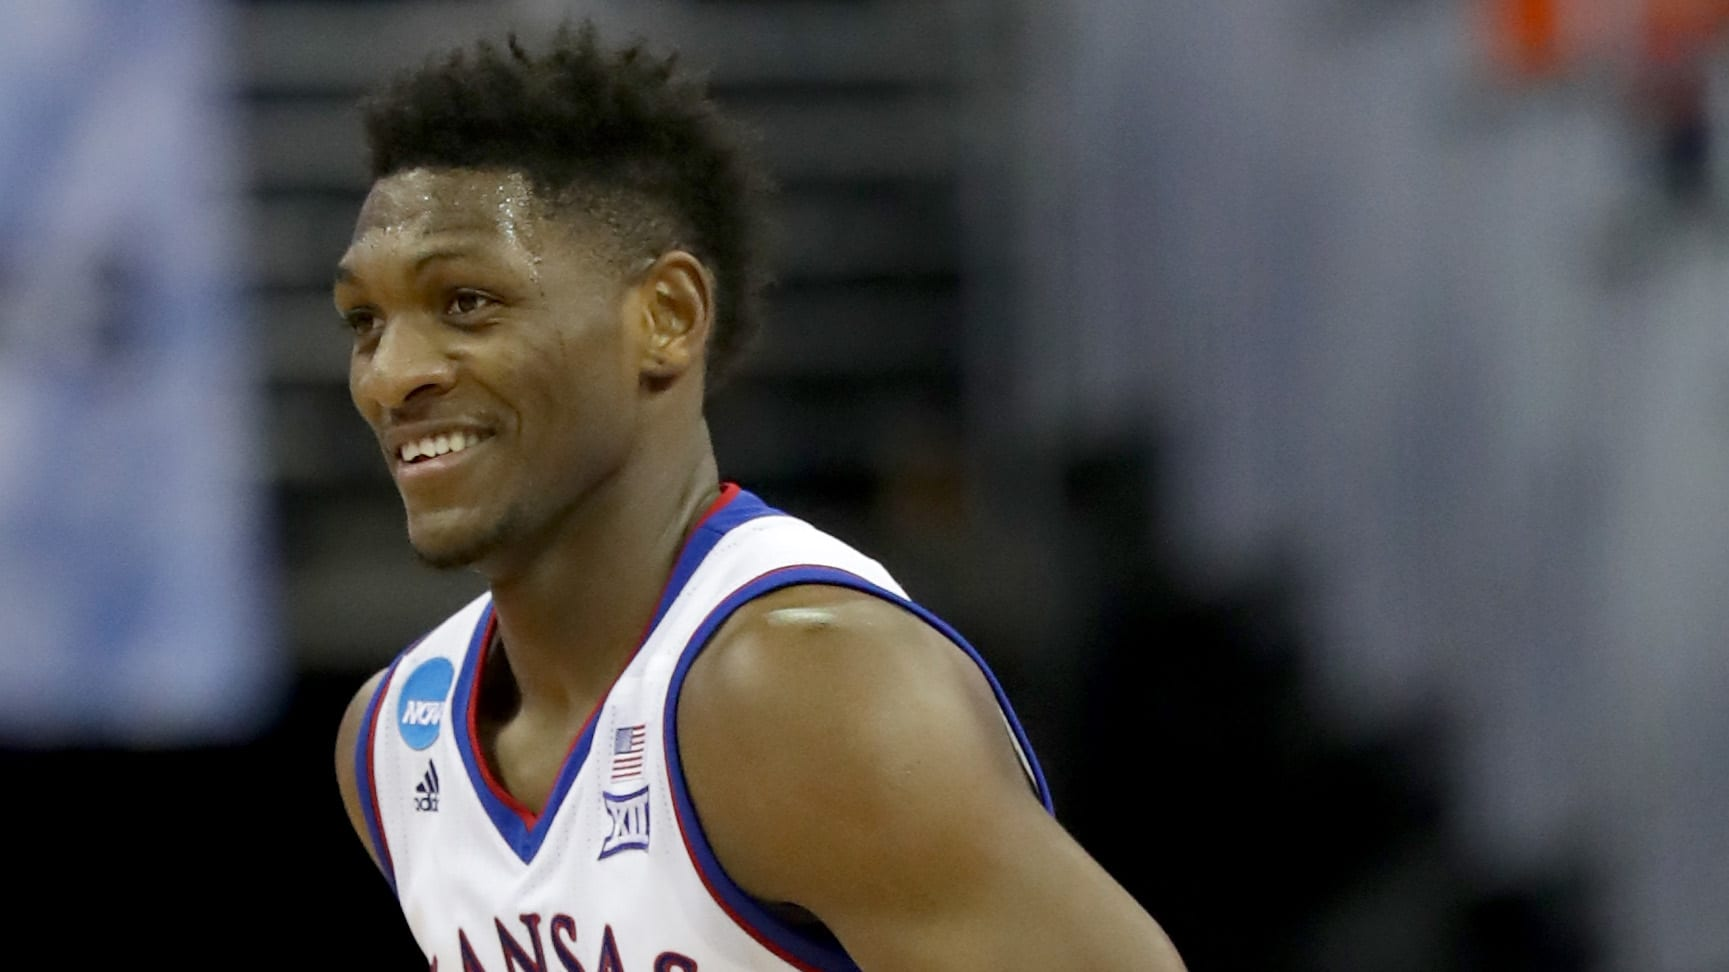 OMAHA, NE - MARCH 23:  Silvio De Sousa #22 of the Kansas Jayhawks reacts against the Clemson Tigers during the second half in the 2018 NCAA Men's Basketball Tournament Midwest Regional at CenturyLink Center on March 23, 2018 in Omaha, Nebraska.  (Photo by Streeter Lecka/Getty Images)